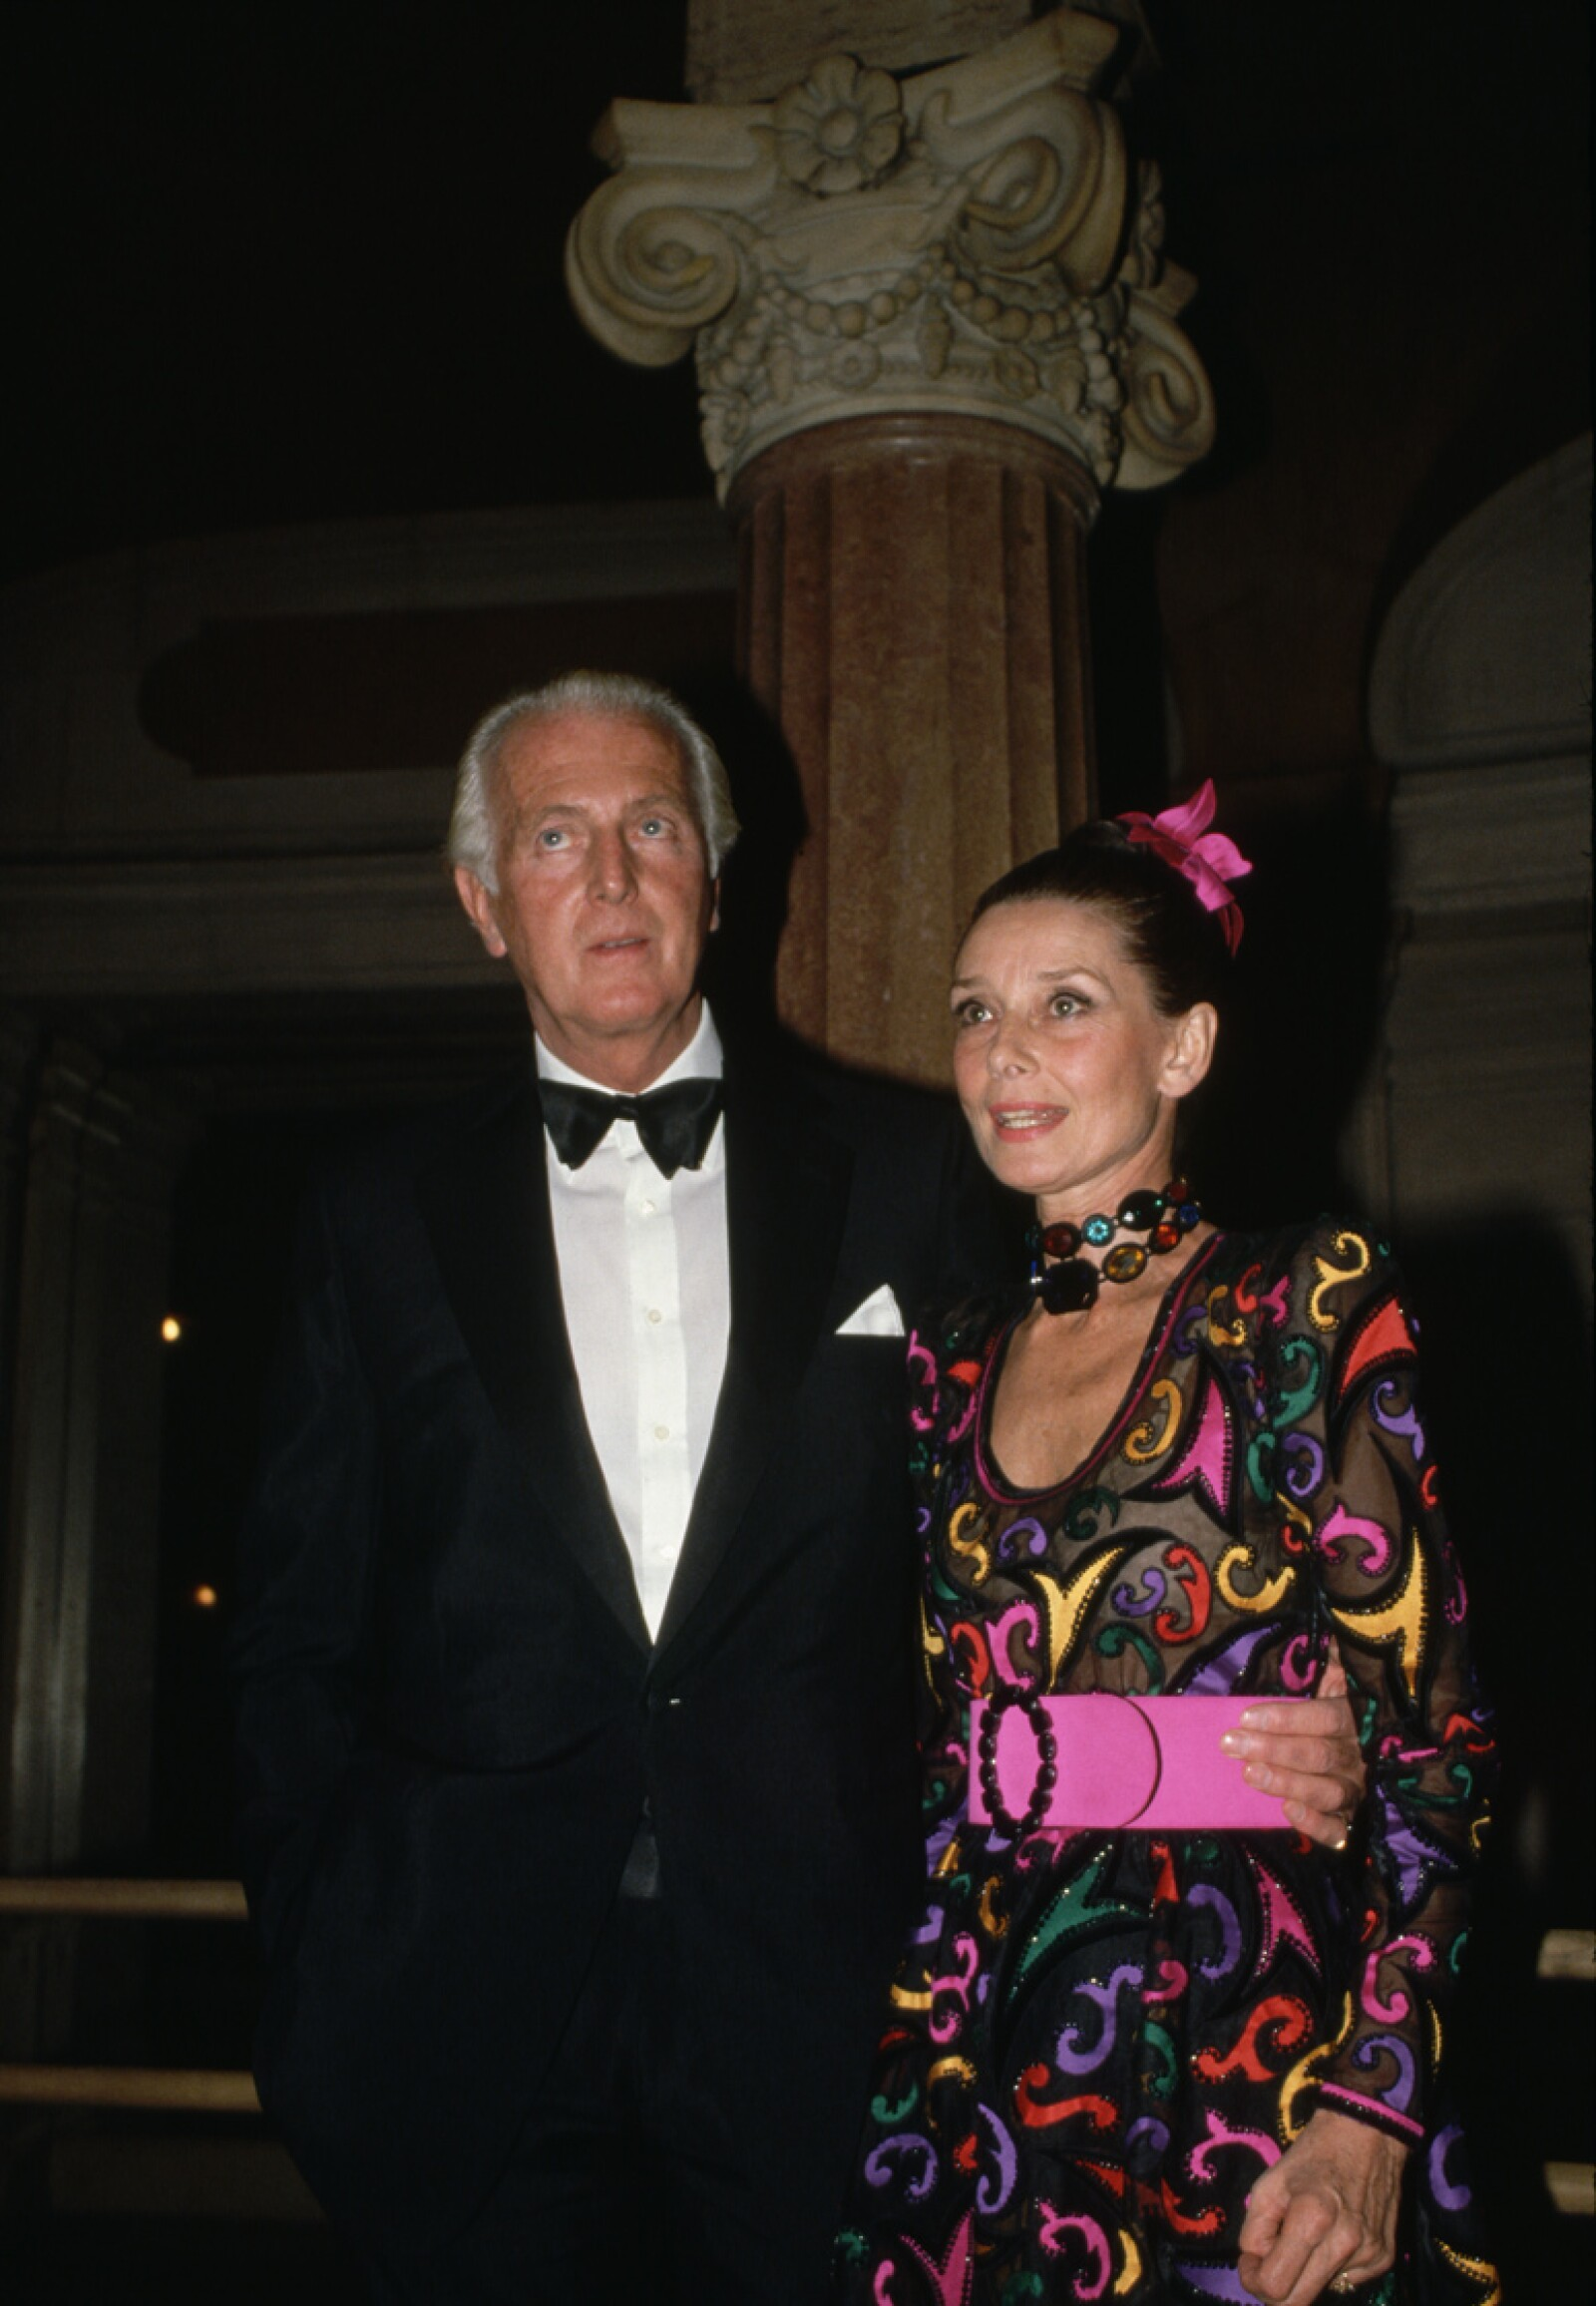 Hubert de Givenchy and Audrey Hepburn